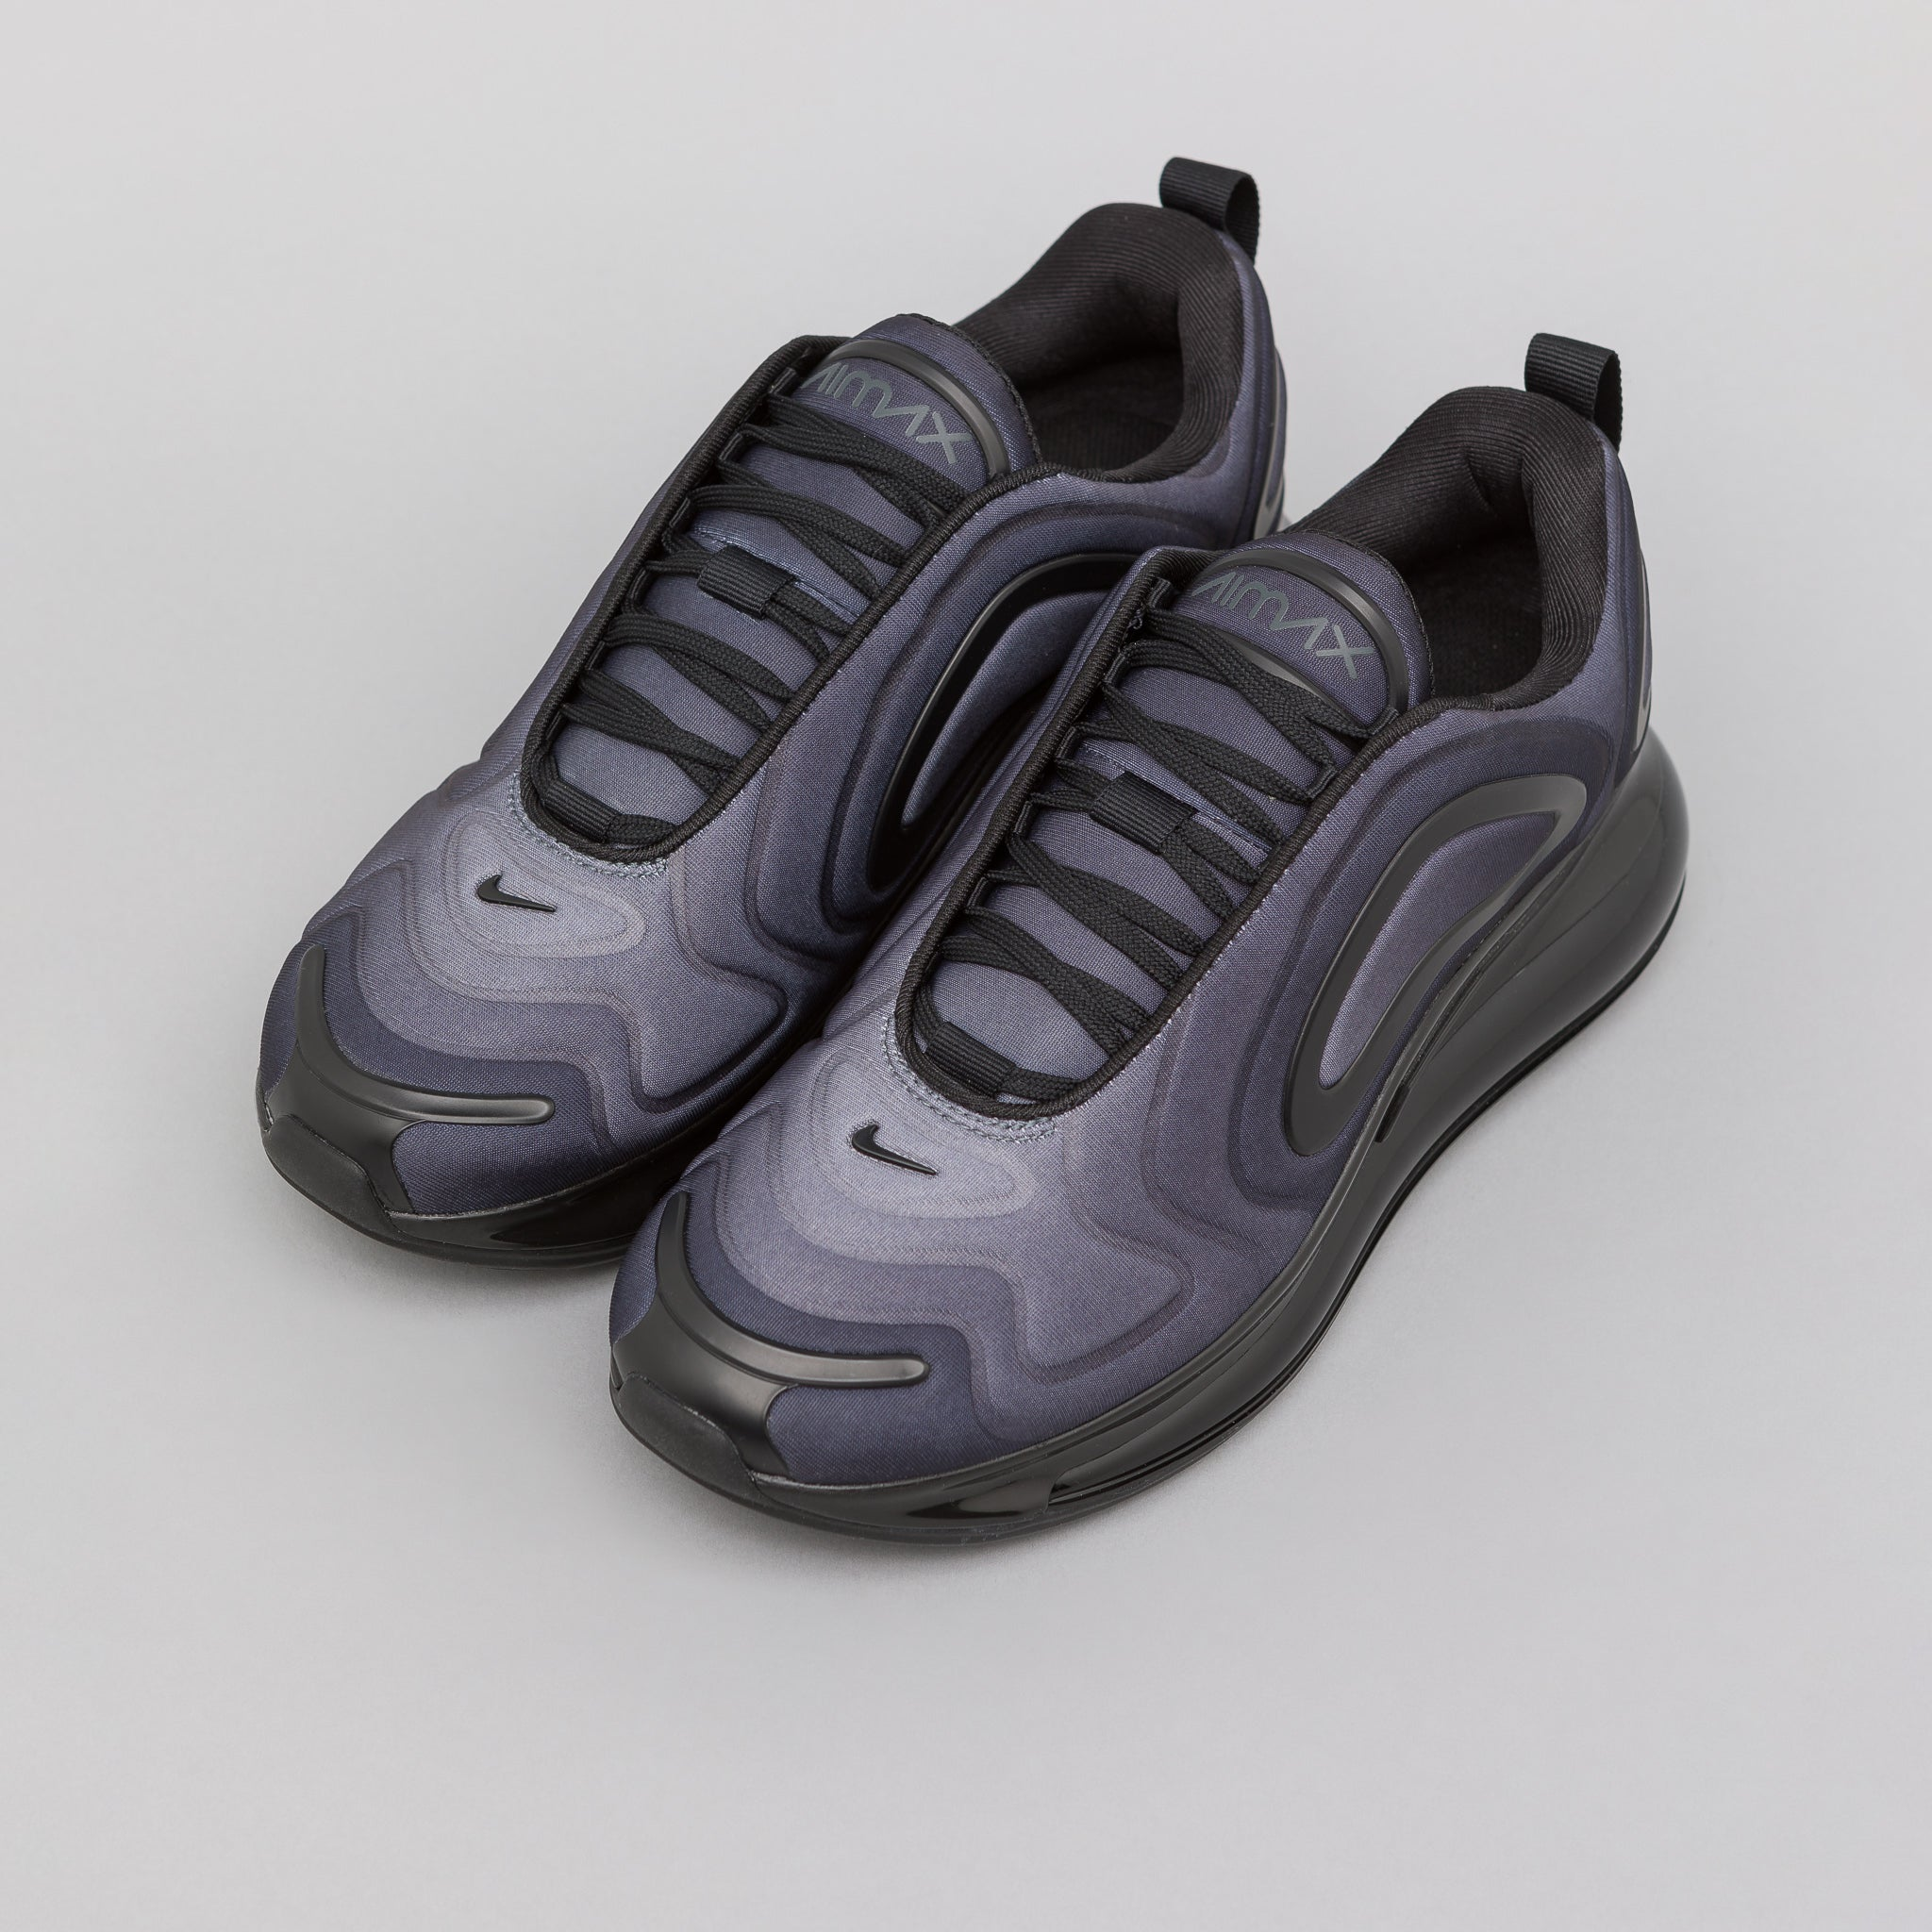 e6f4aee9038db Nike Air Max 720 in Black Anthracite